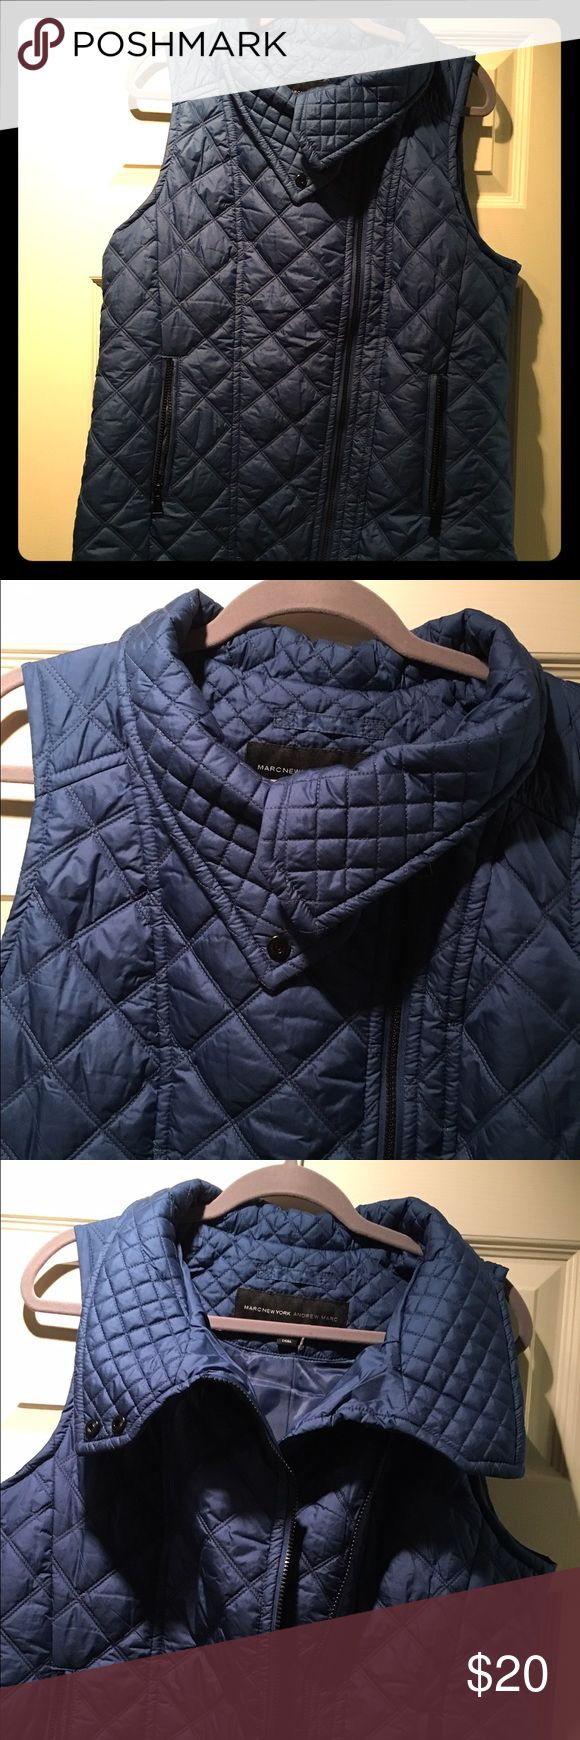 💙💙 Marc New York Andrew Marc Blue Vest. Sz L💙💙 💙💙 Marc New York Andrew Marc Blue Vest. Sz L💙💙 New Without Tags. Adorable vest! Super cute zipped up or down. Smoke free/pet free/quick shipping. Andrew Marc Jackets & Coats Vests